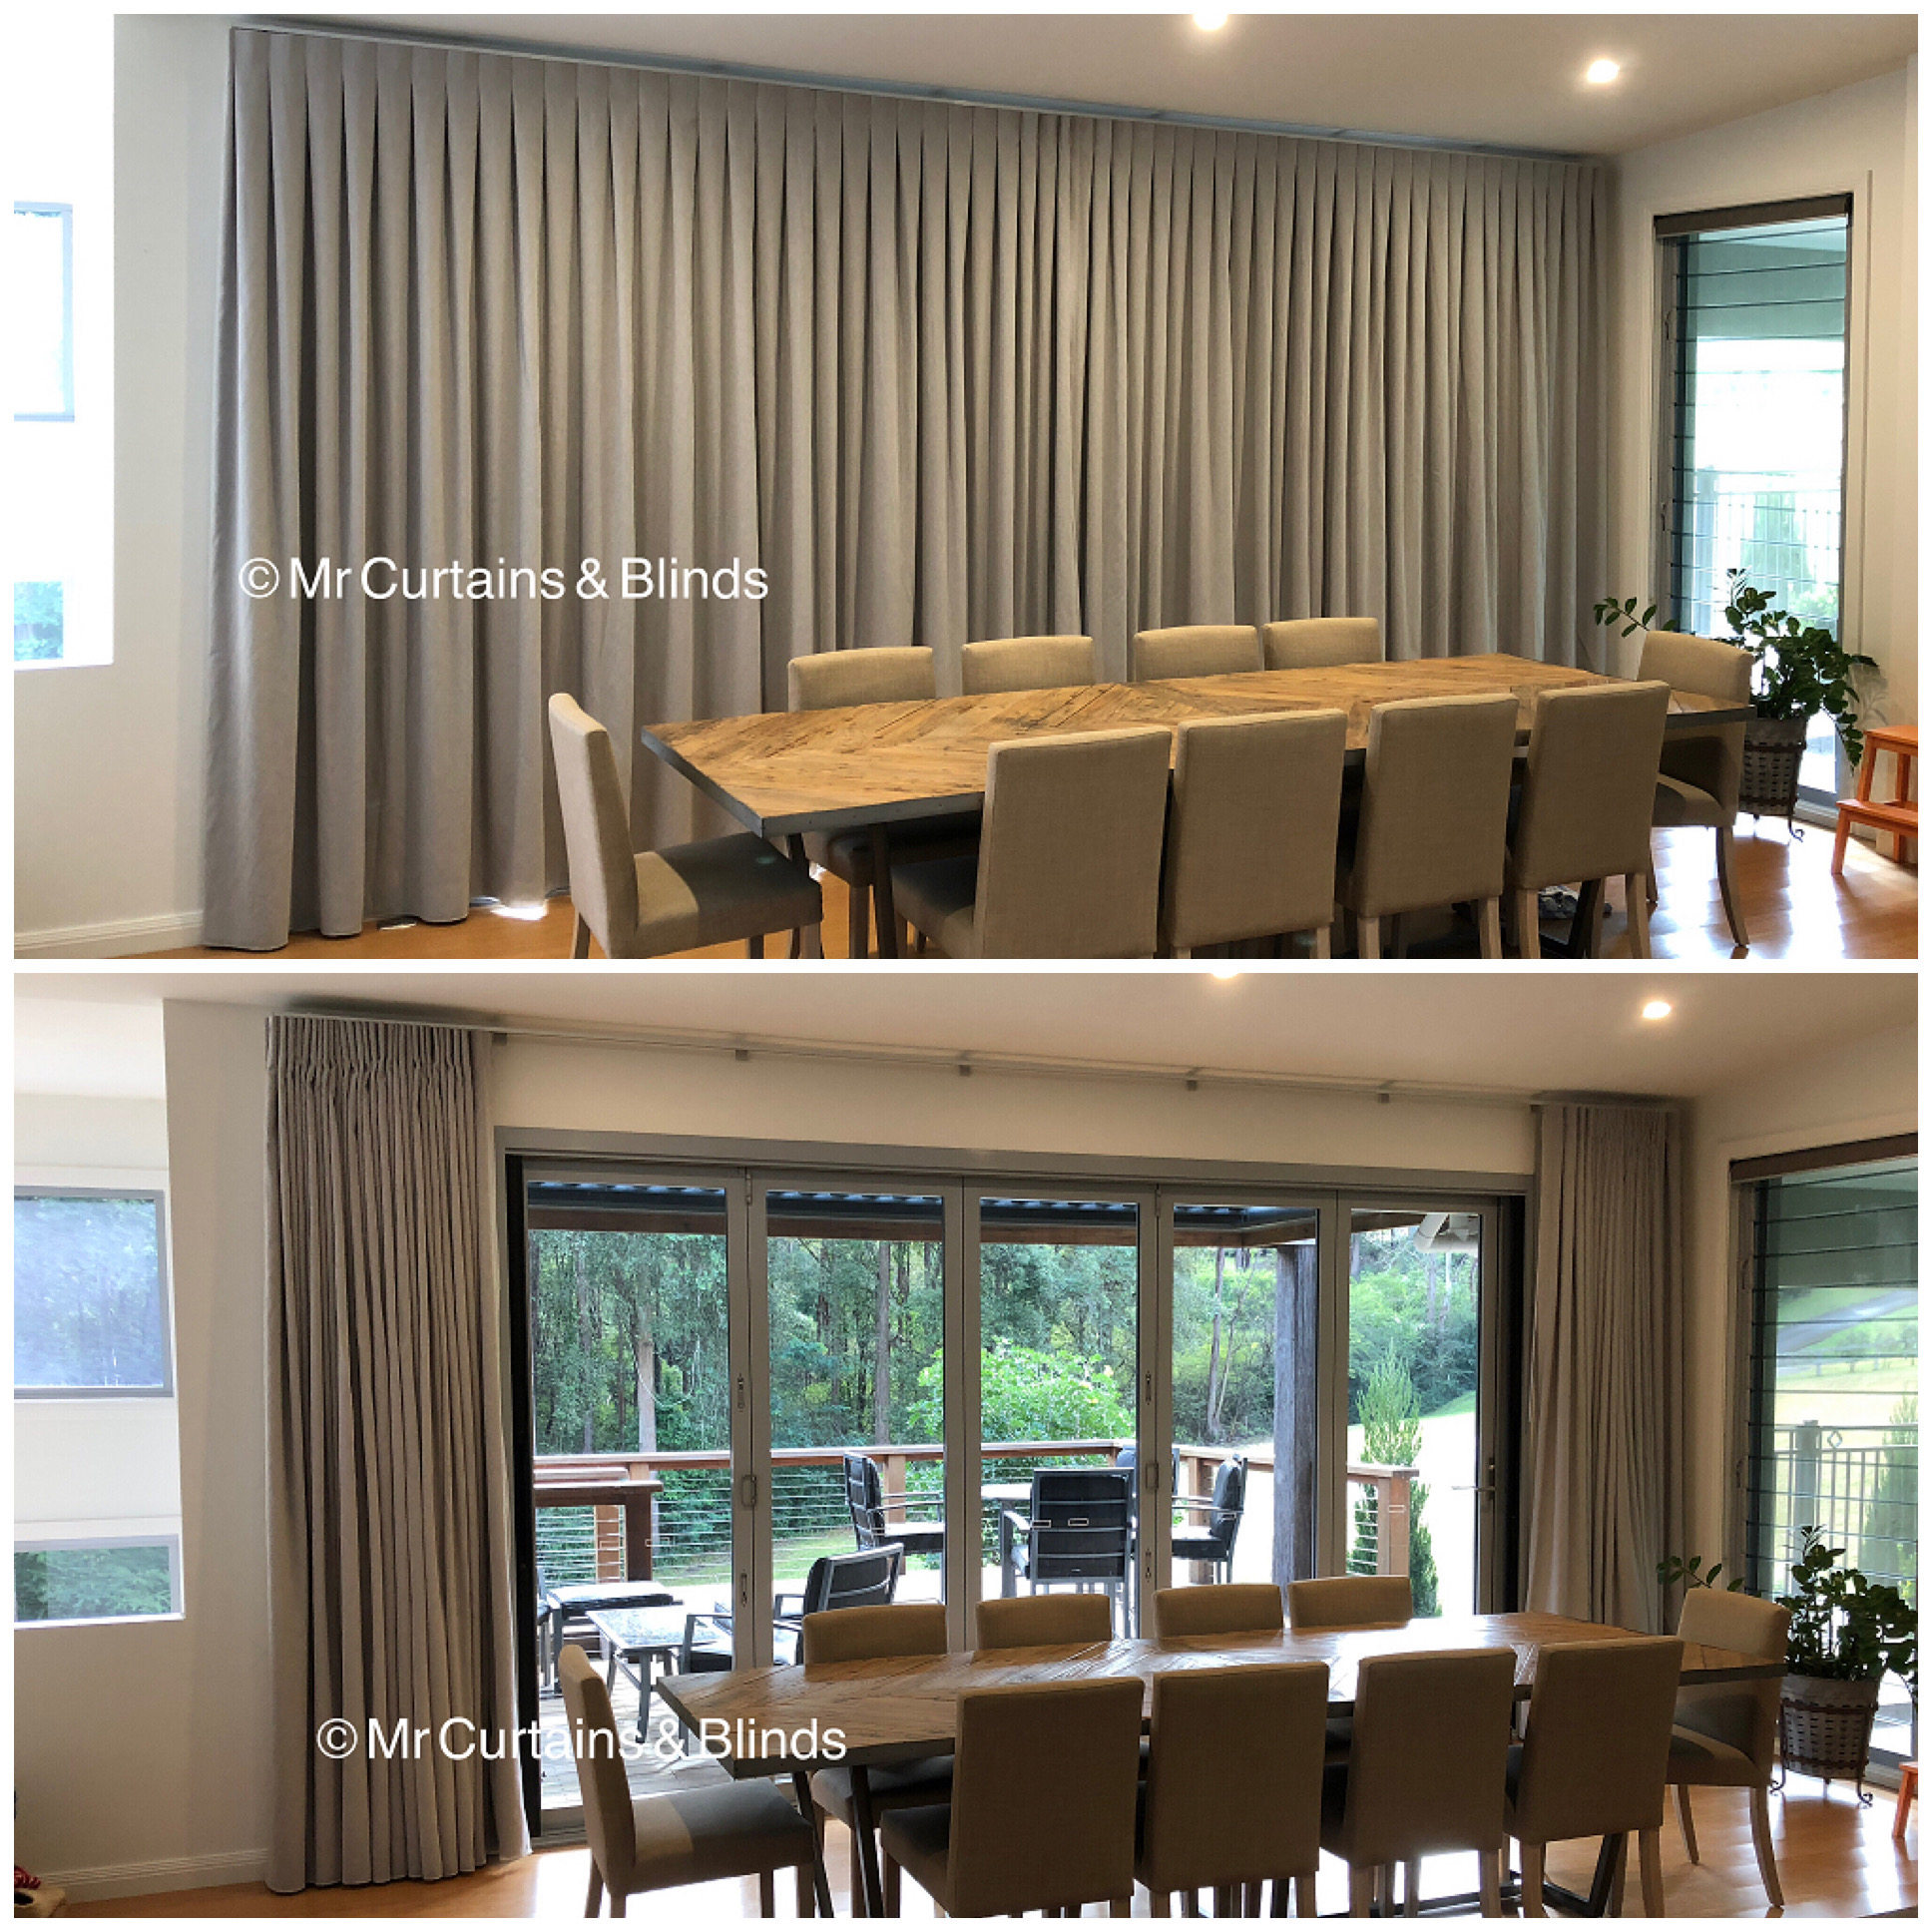 Reverse pleat curtains Mr Curtains and Blinds Central Coast